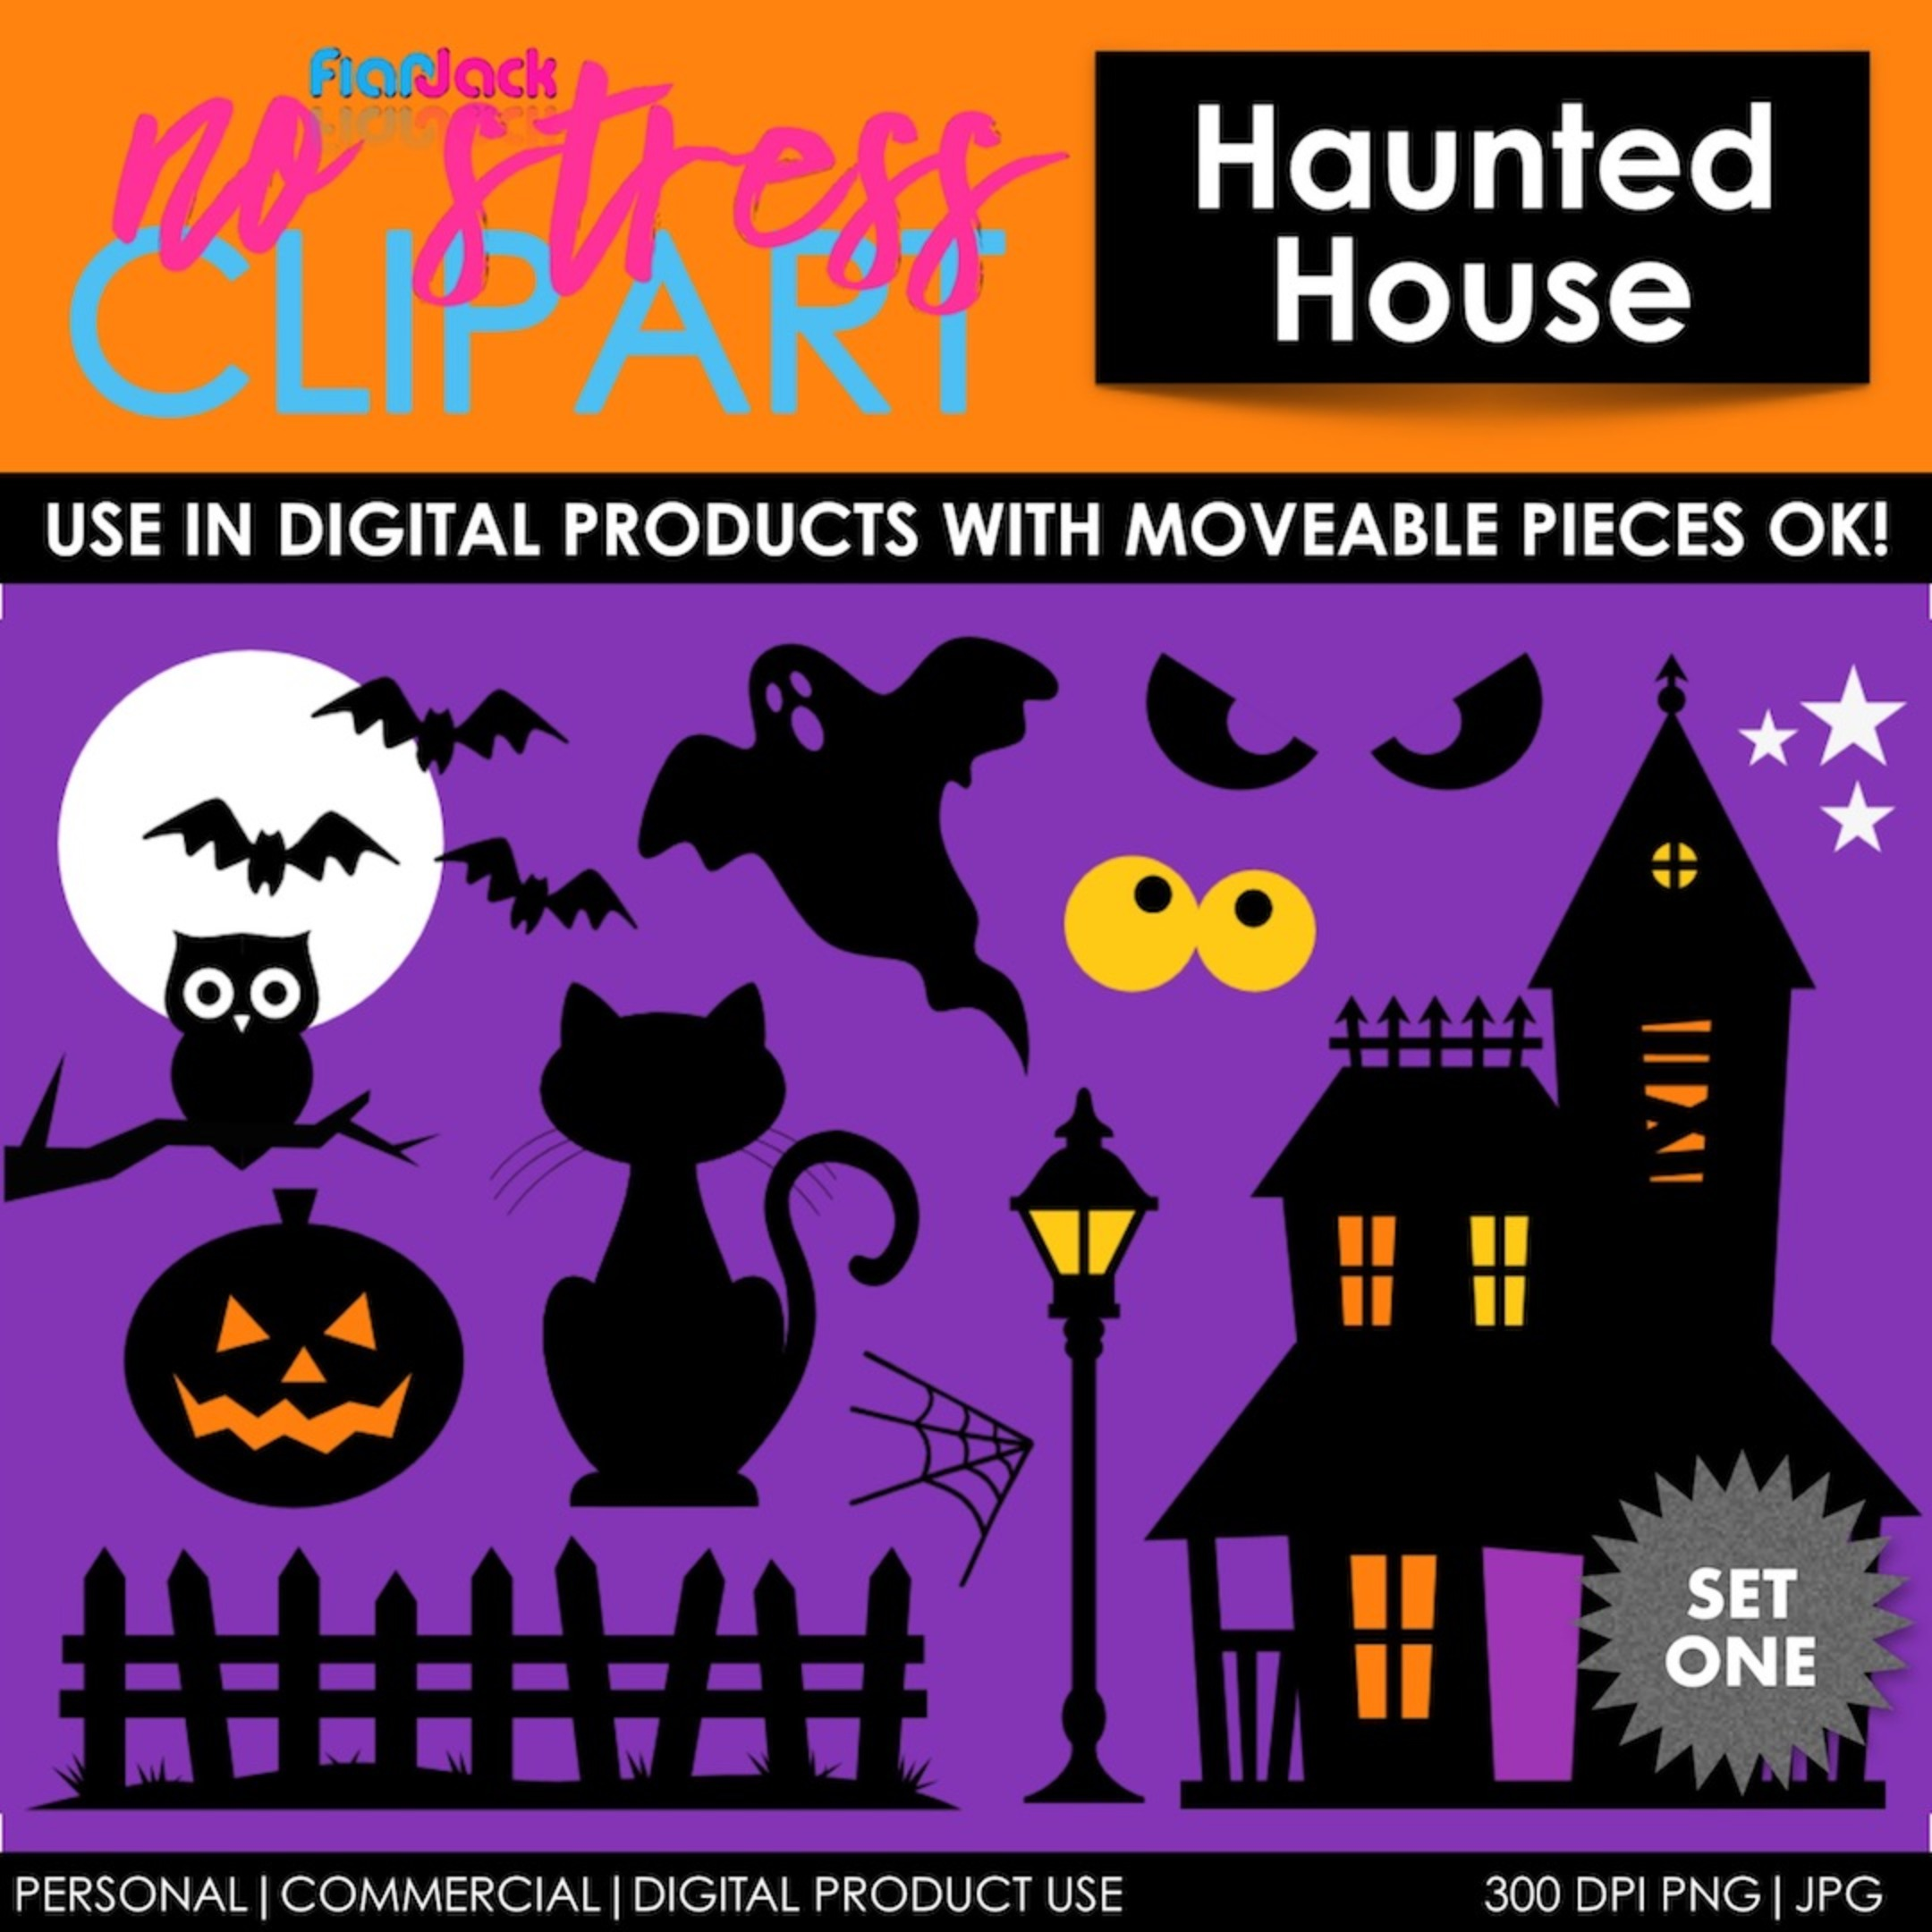 Haunted House Set 1